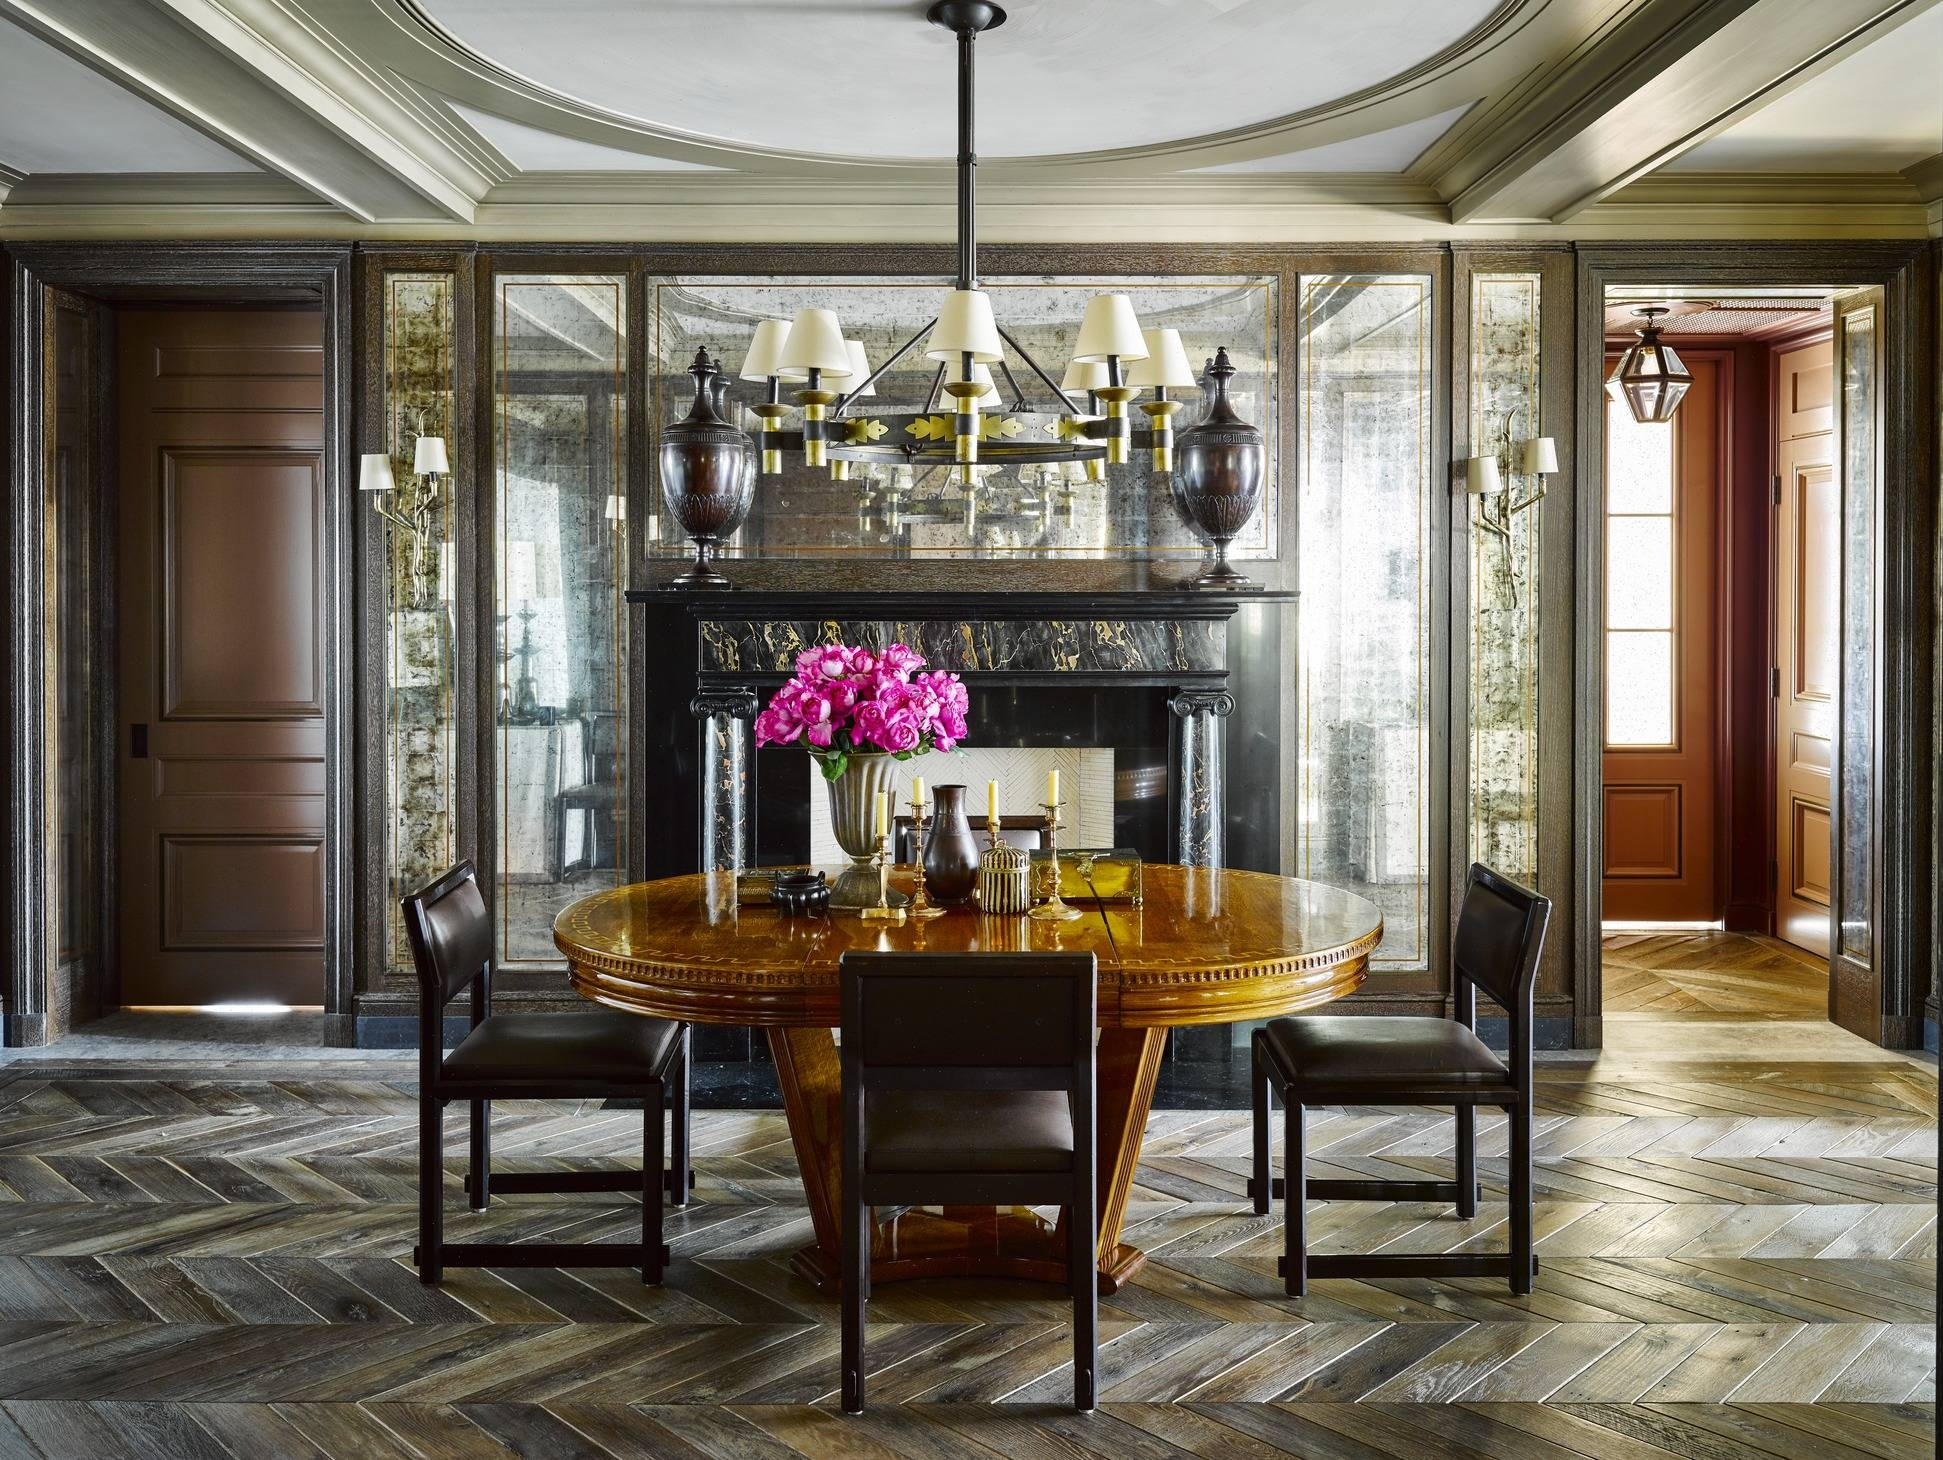 25 Modern Dining Room Decorating Ideas – Contemporary Dining Room Within 2017 Modern Wall Art For Dining Room (View 15 of 15)